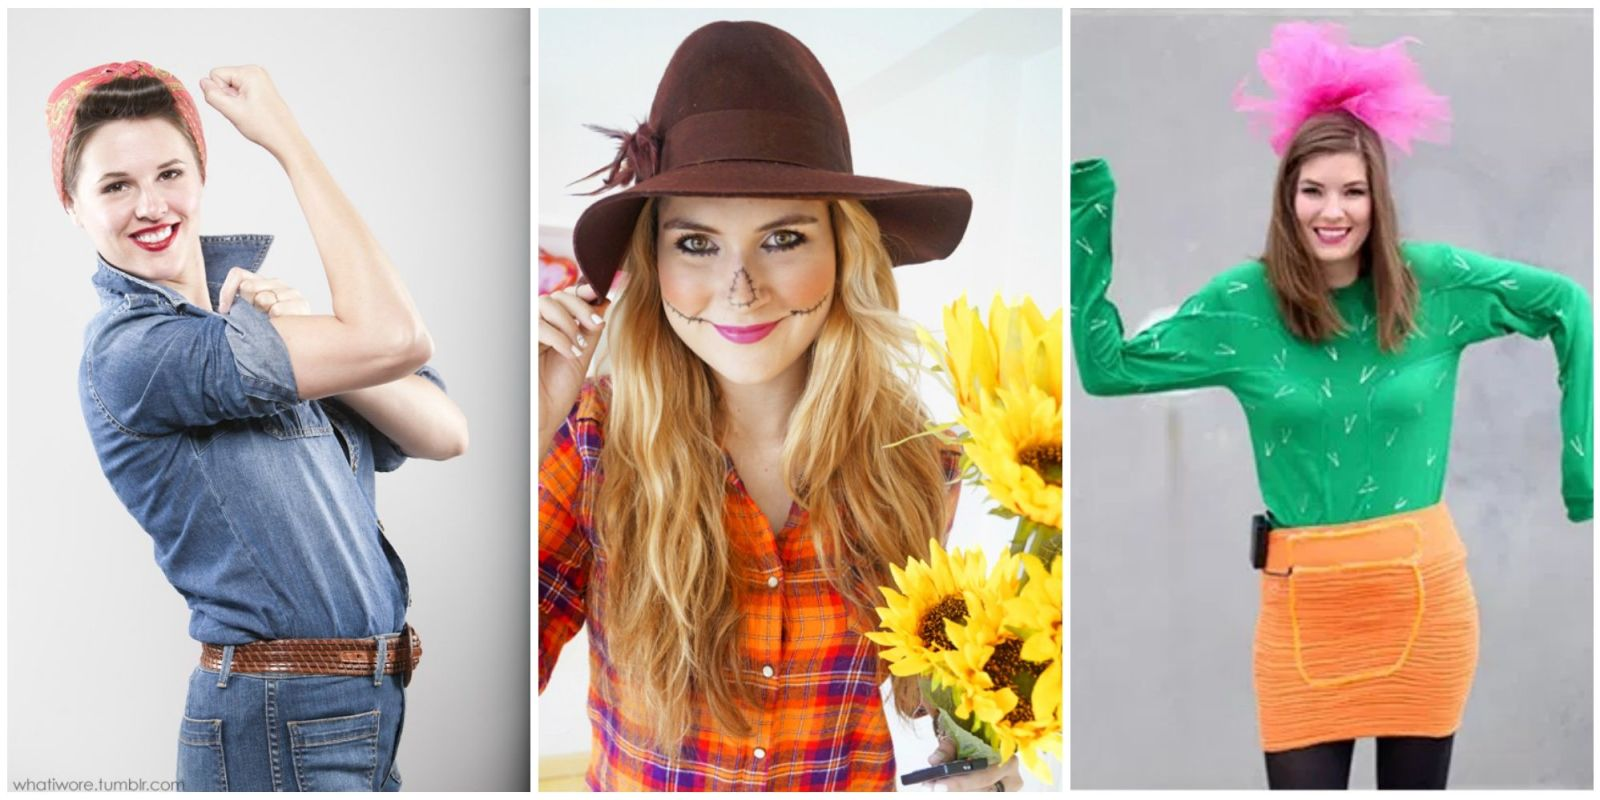 21 diy halloween costumes for women easy last minute for Simple diy halloween costumes for women